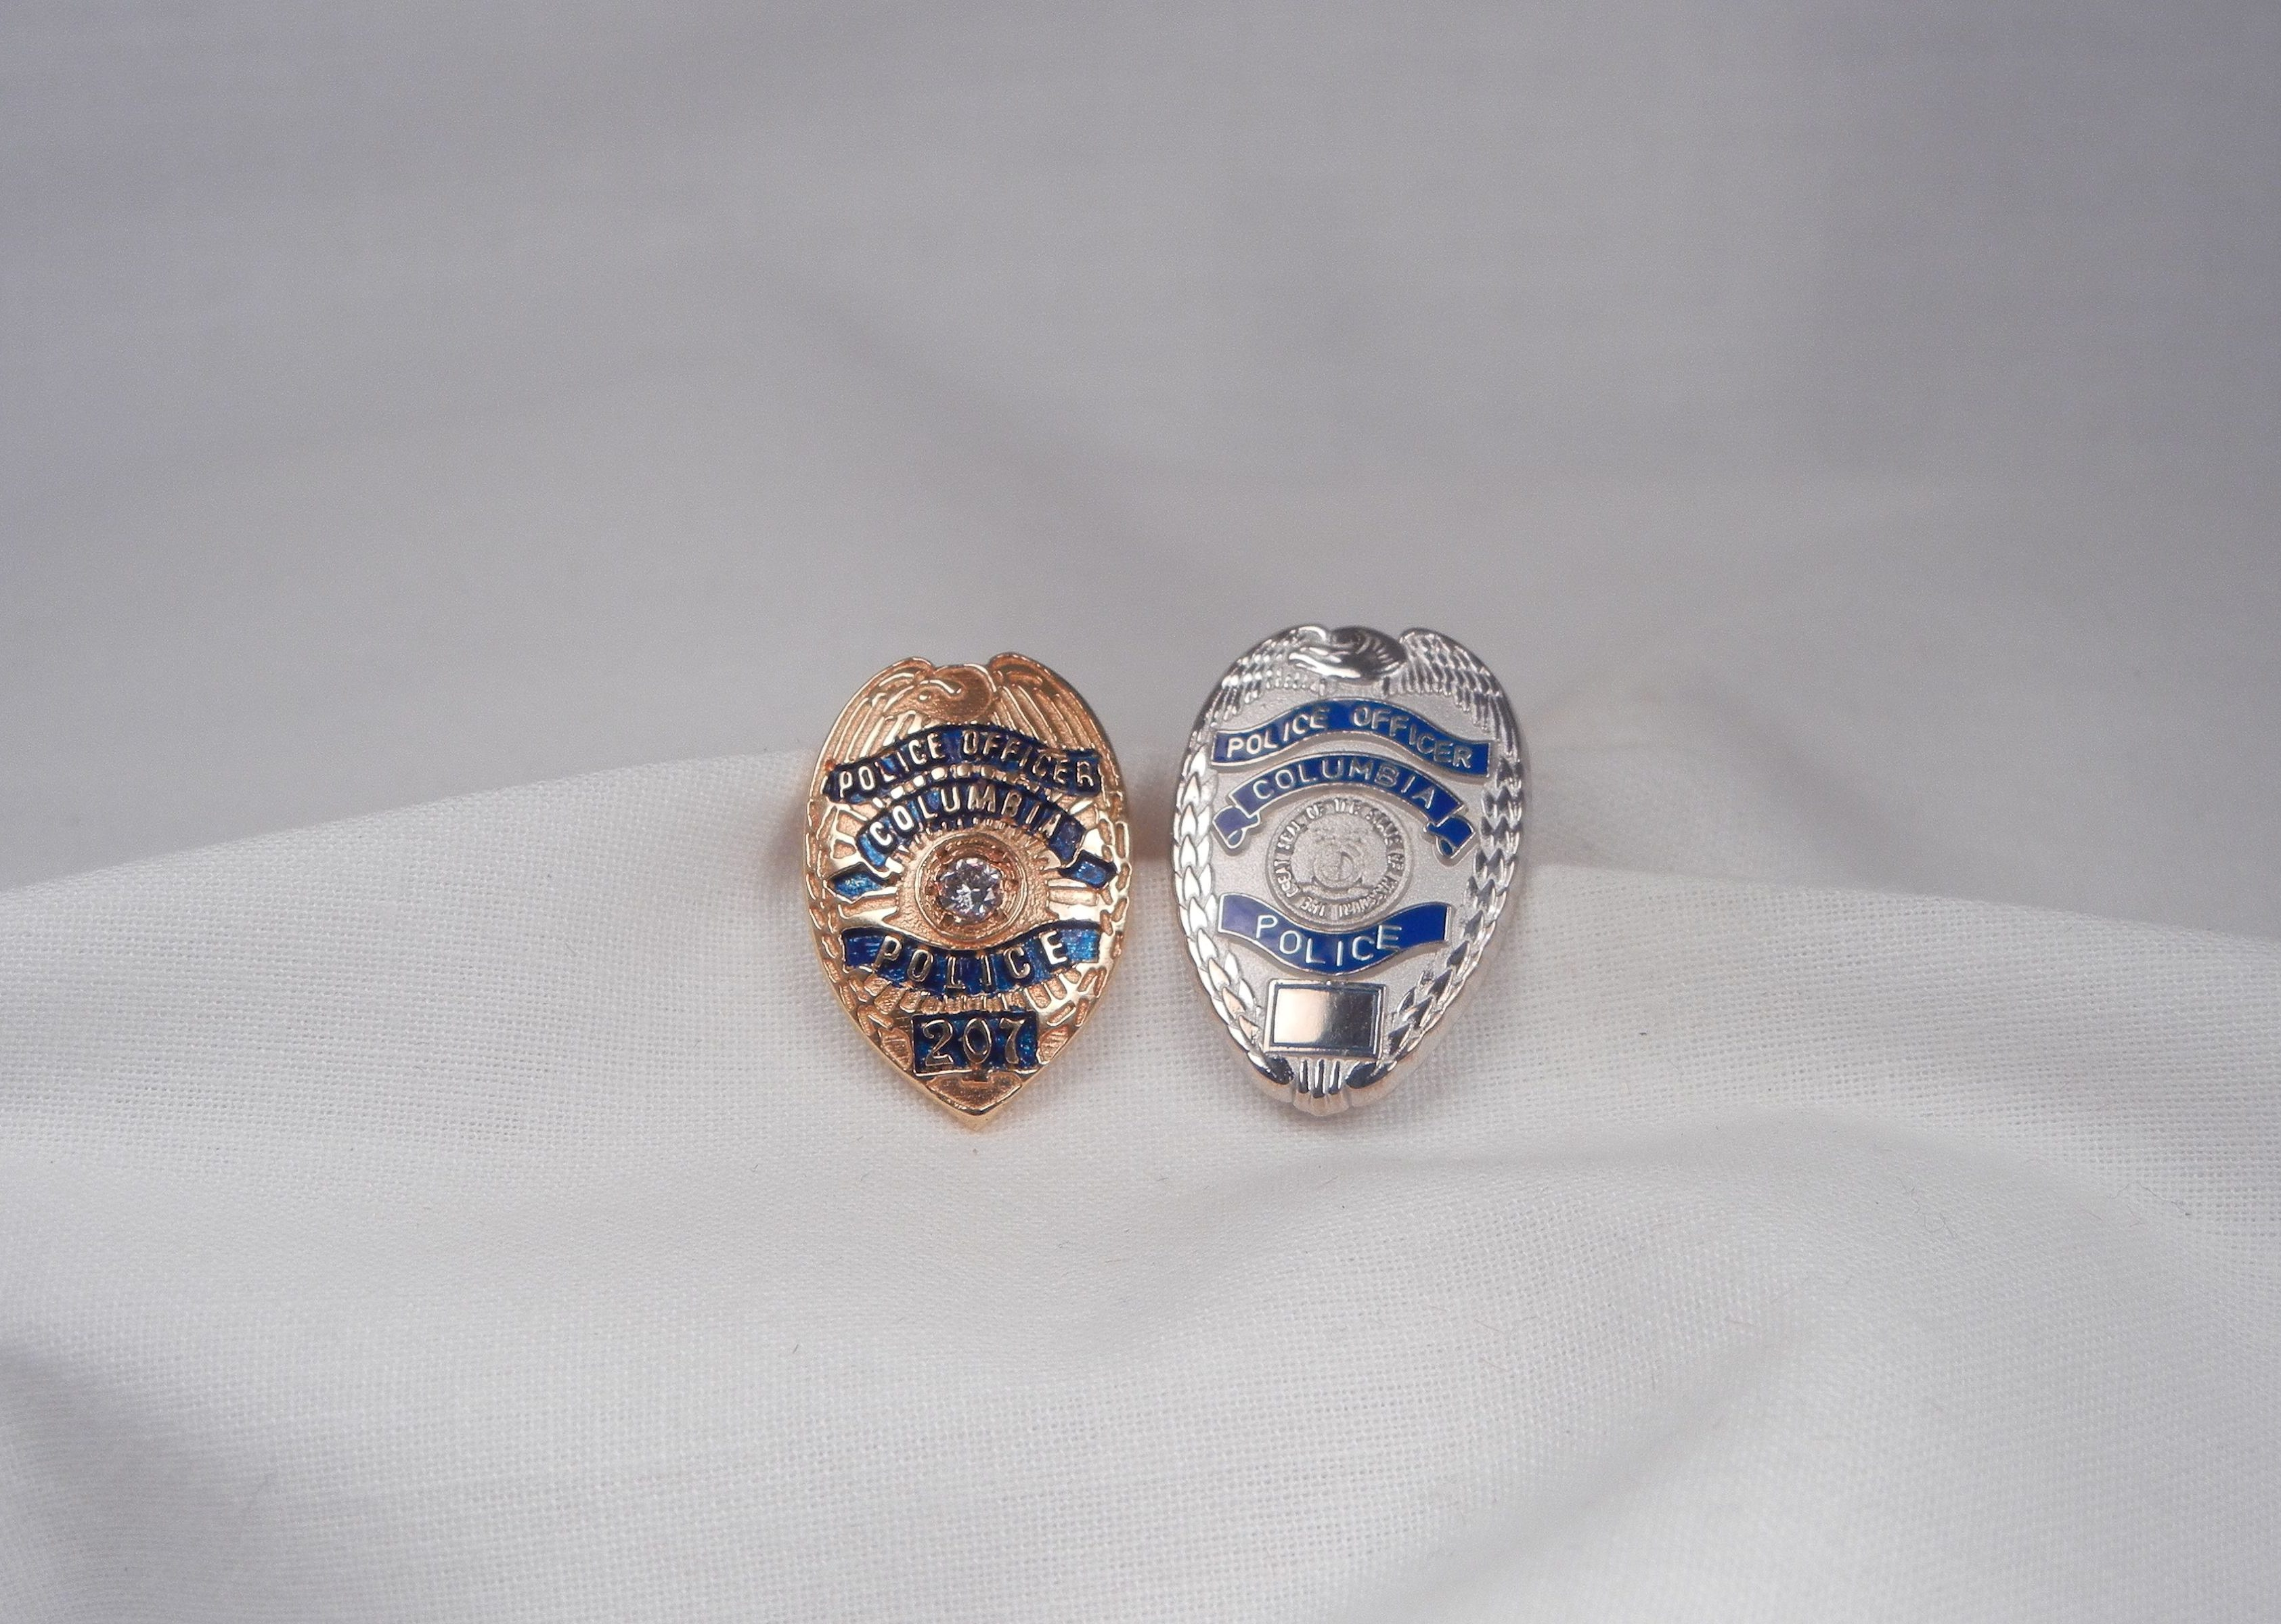 police p store michael pendant badge st necklace